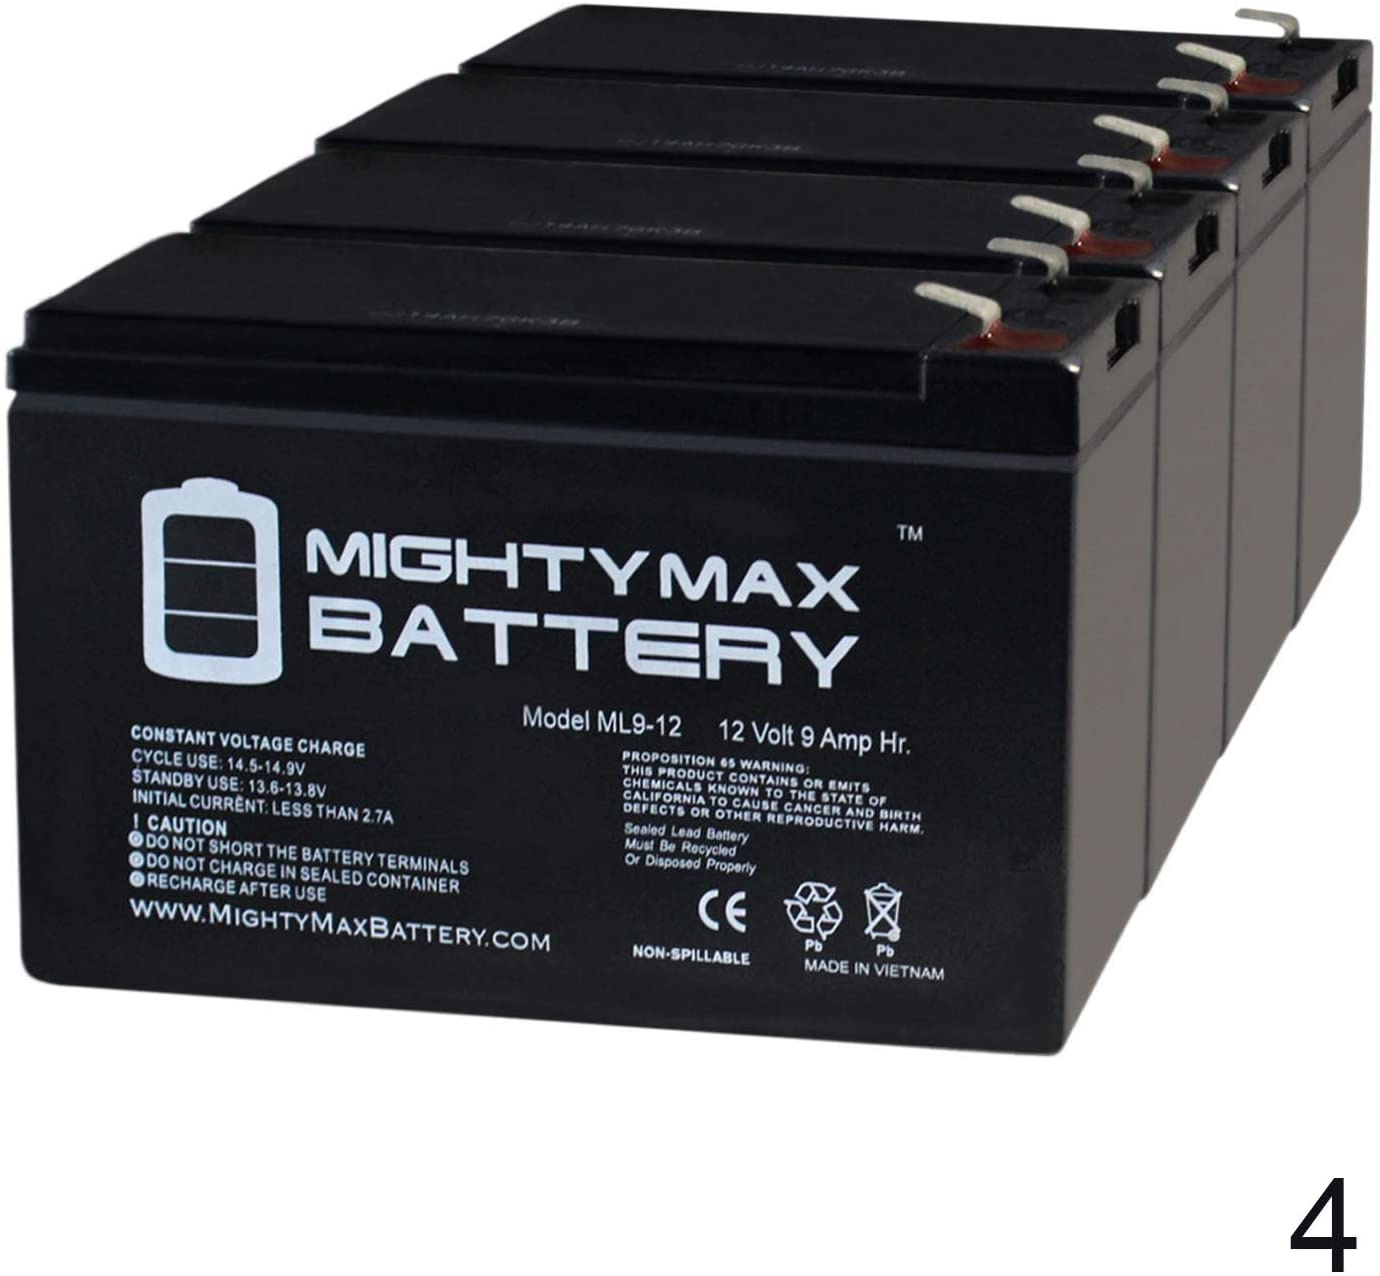 Mighty Max Battery 12V 9AH Battery for Razor EcoSmart Metro Electric Scooter - 4 Pack Brand Product